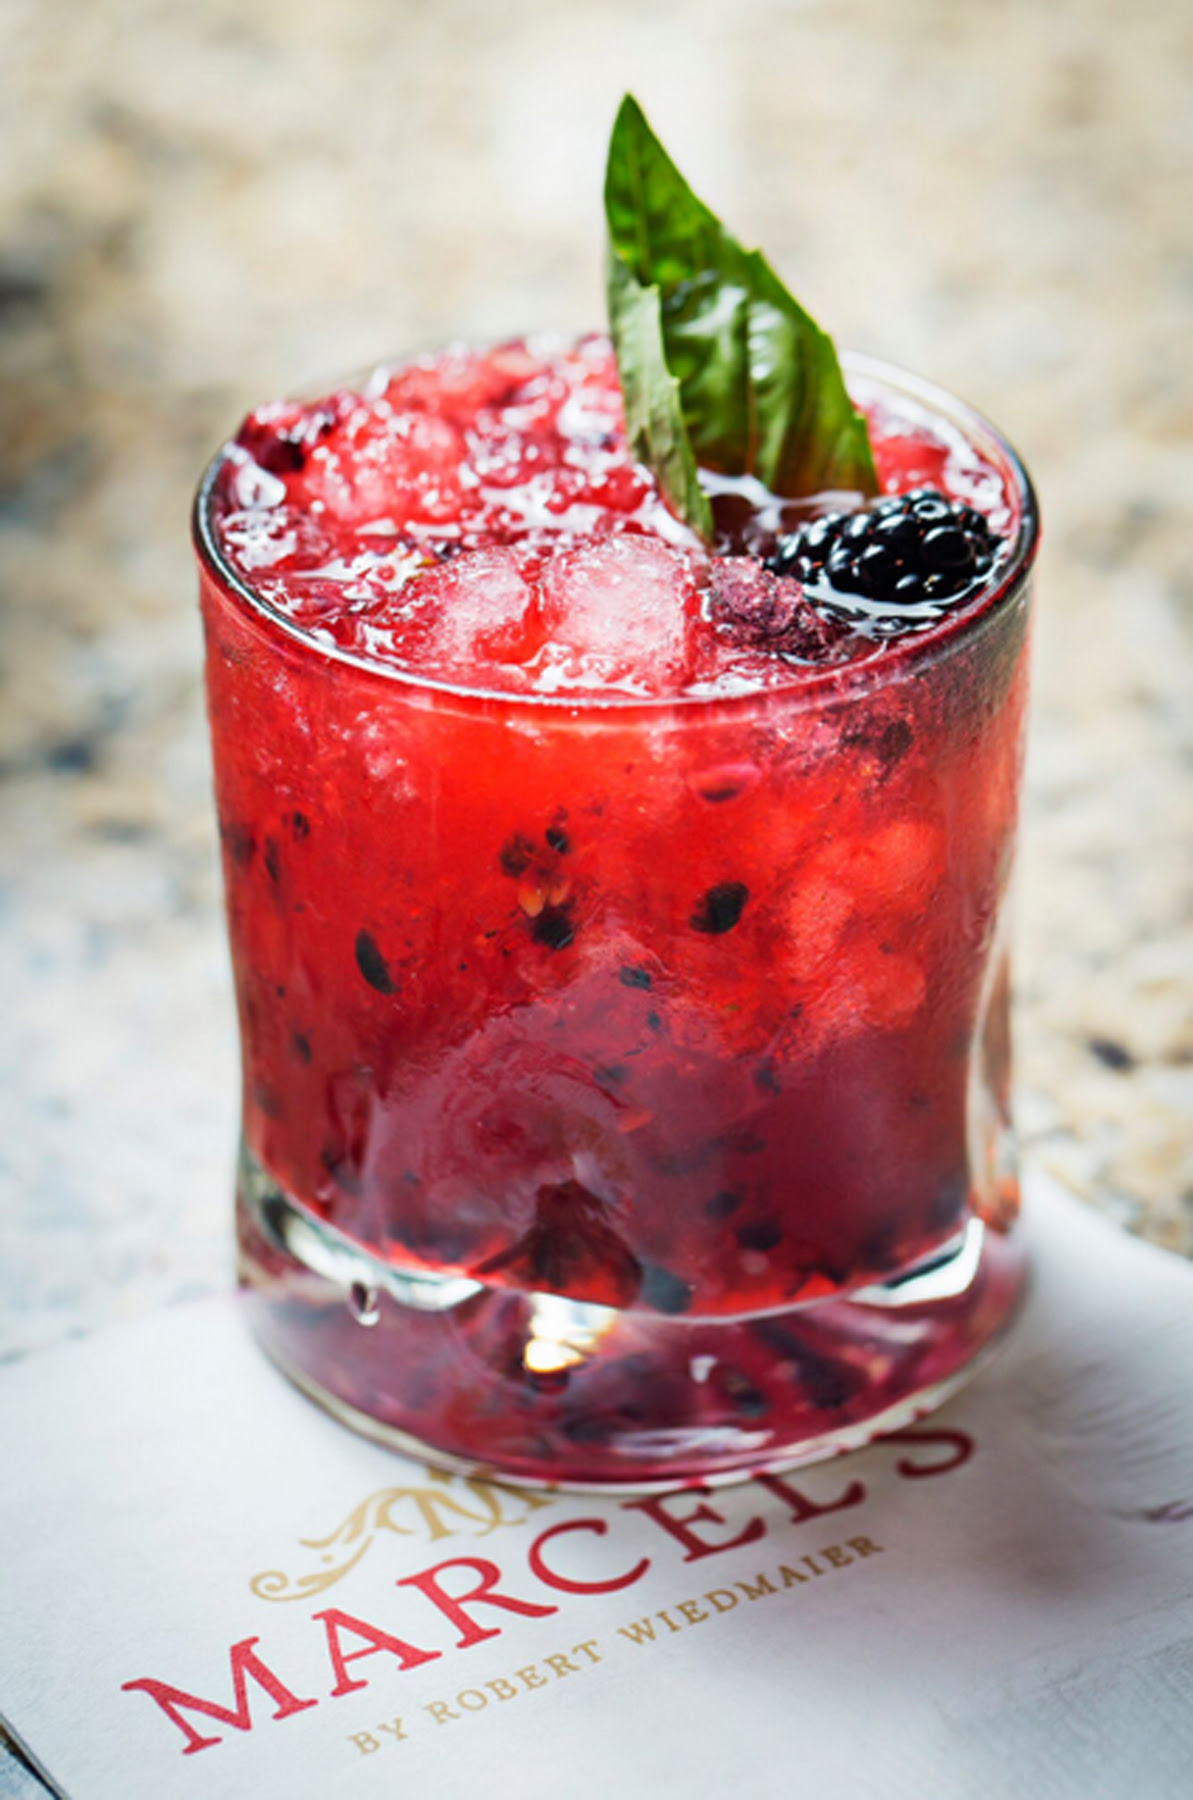 Marcel's has a Cherry-Berry Caipirinha, made with house-made cherry-ginger syrup and cherry-blackberry-basil shrub, Cachaça, lime and sugar. (Photo: Marcel's)